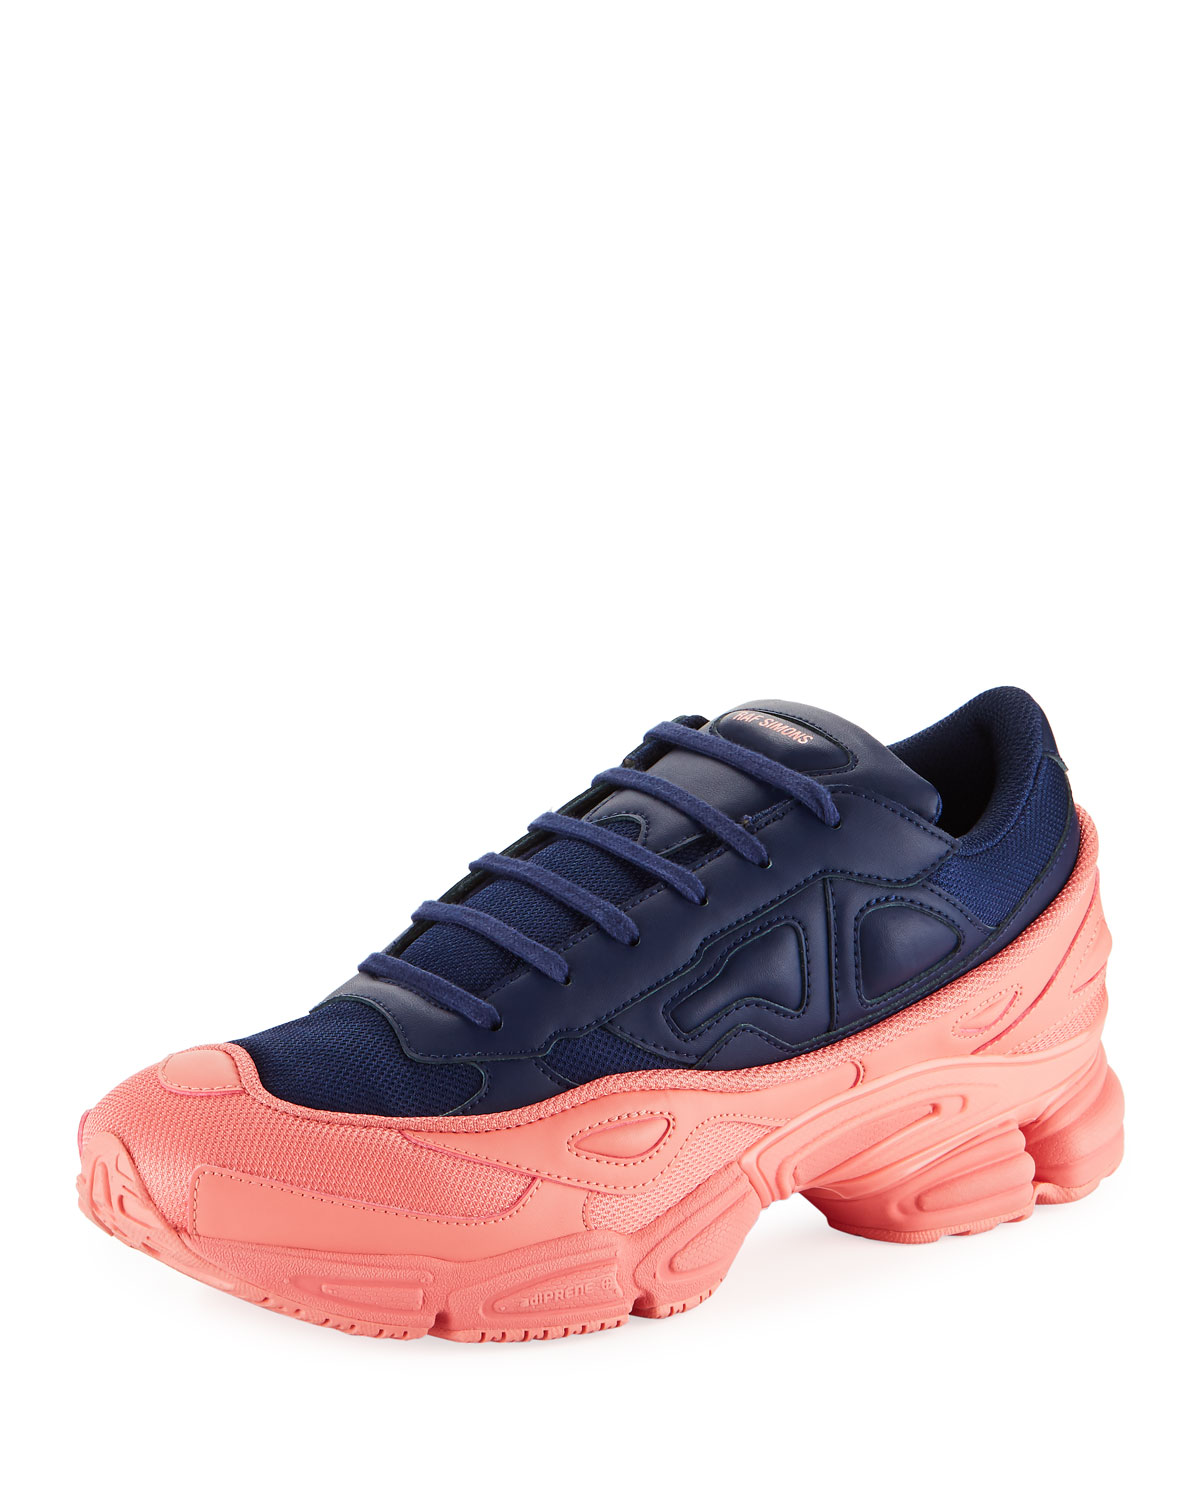 Raf Sneakers adidas Color Trainer Men's by Ozweego Simons Dipped T3lKJF1c